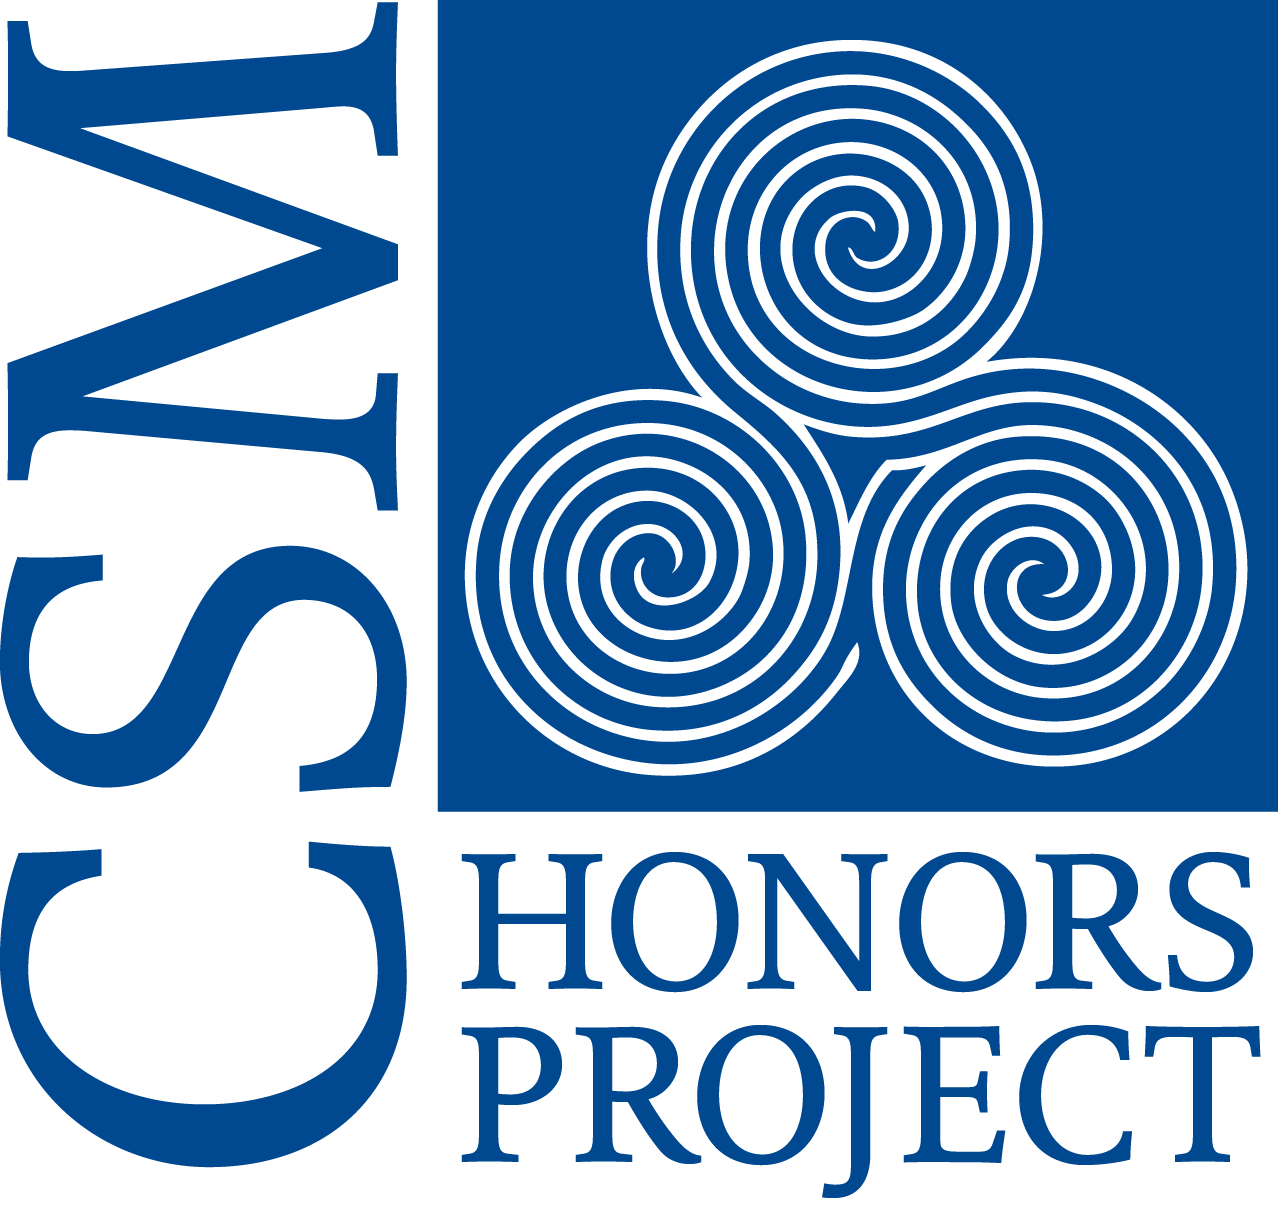 CSM Honors Project